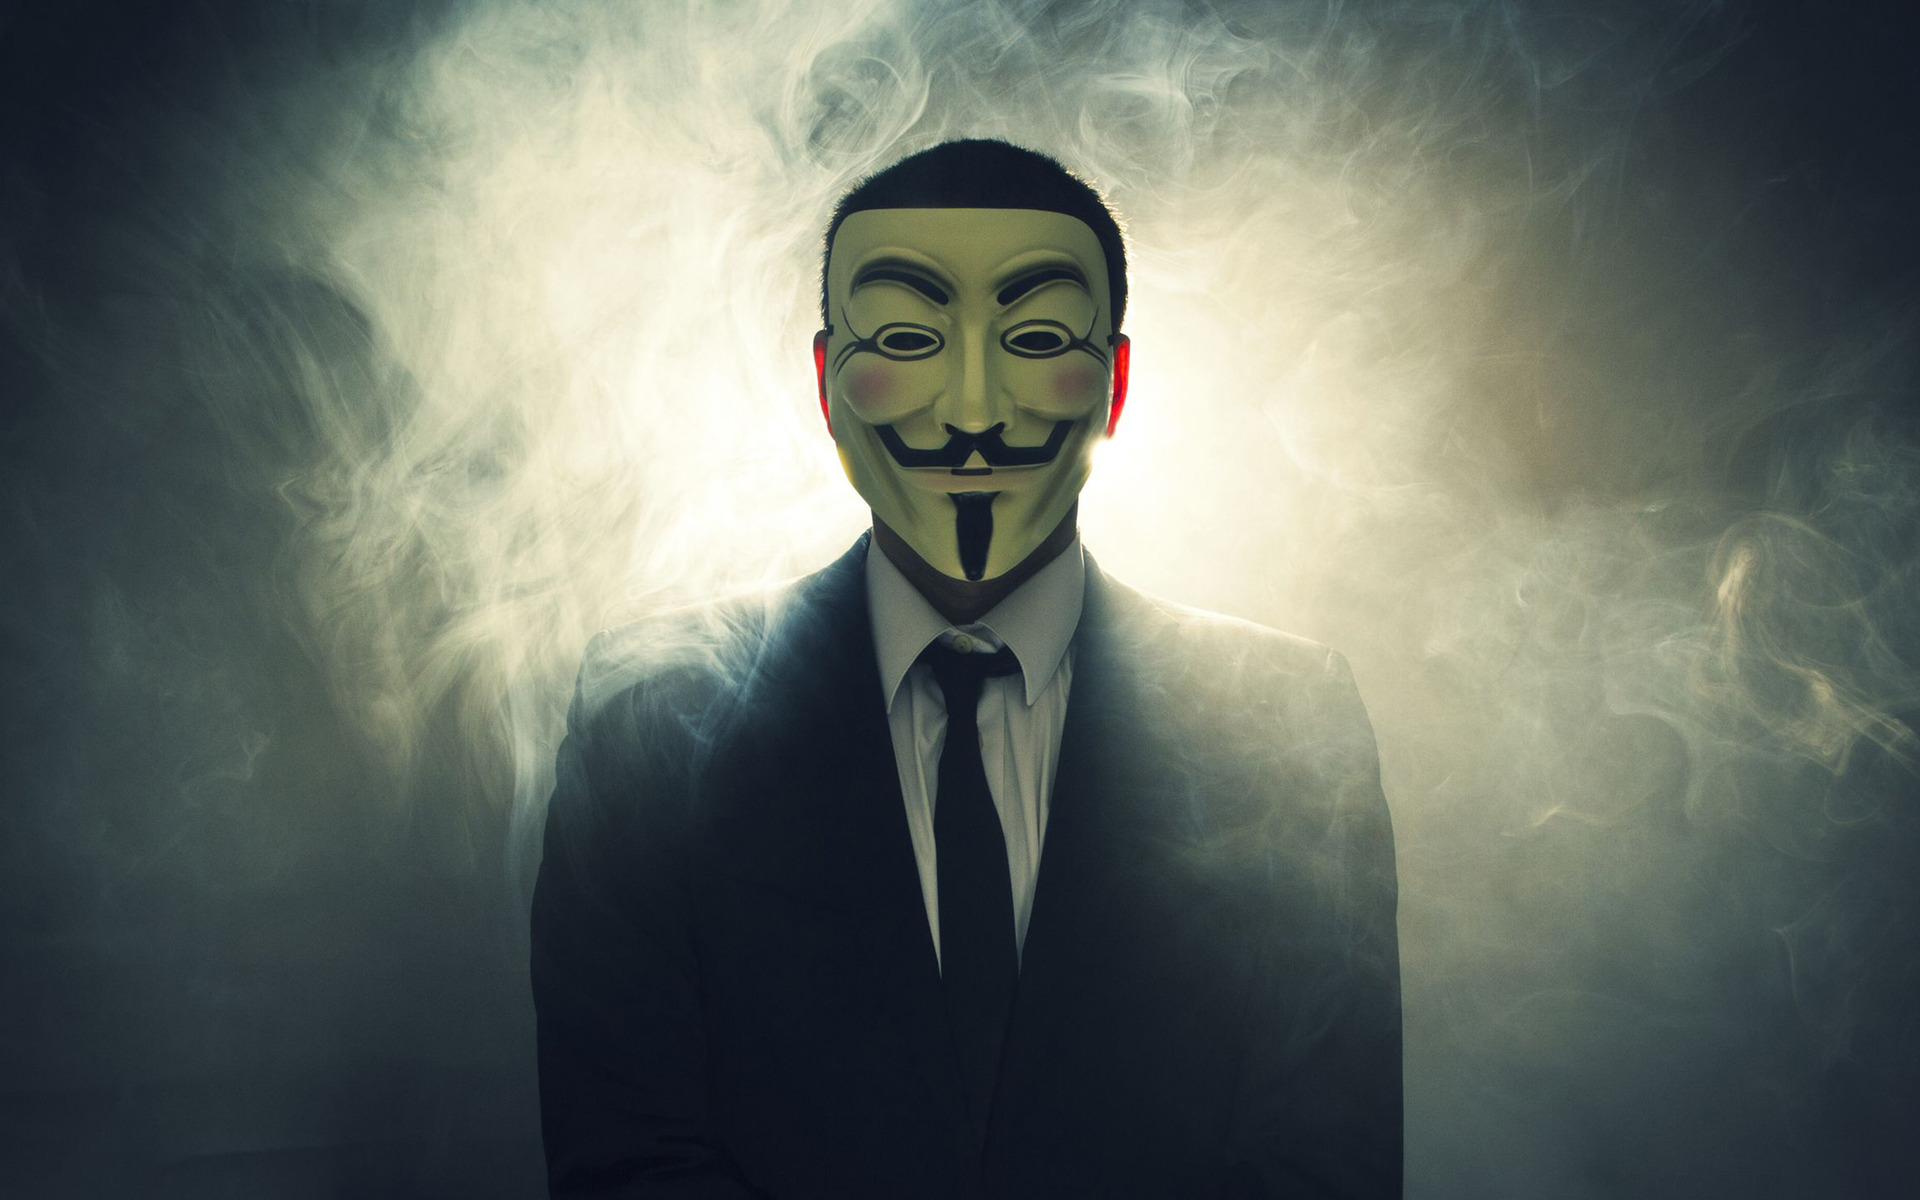 anonymous-photography-hd-wallpaper-1920x1200-7842